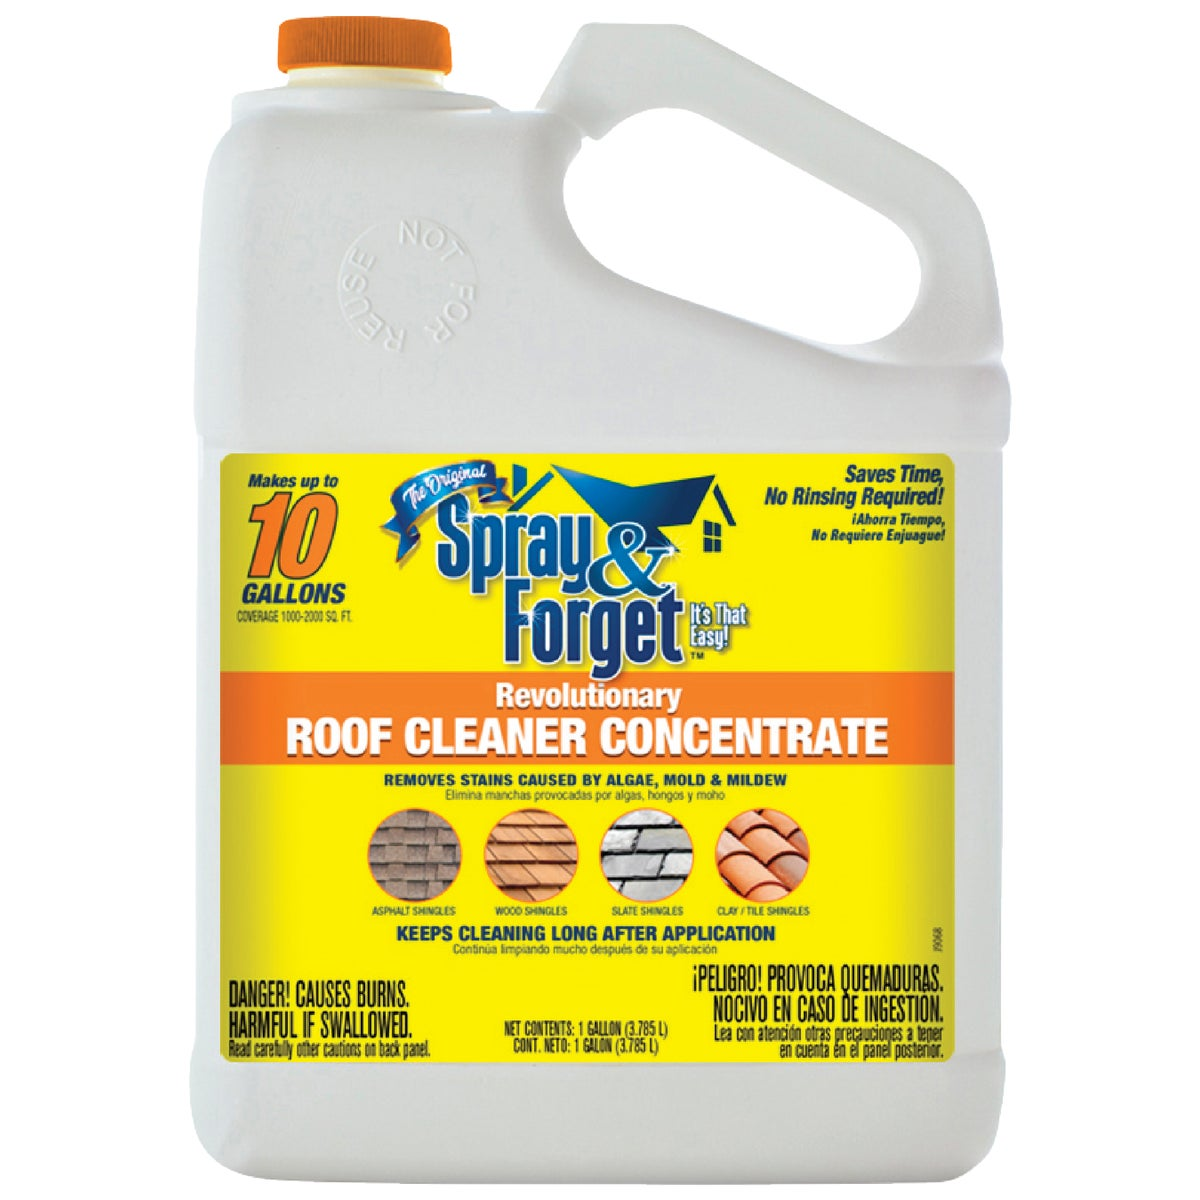 SPRAY & FORGET CLEANER - SF1G-J by Spray And Forget